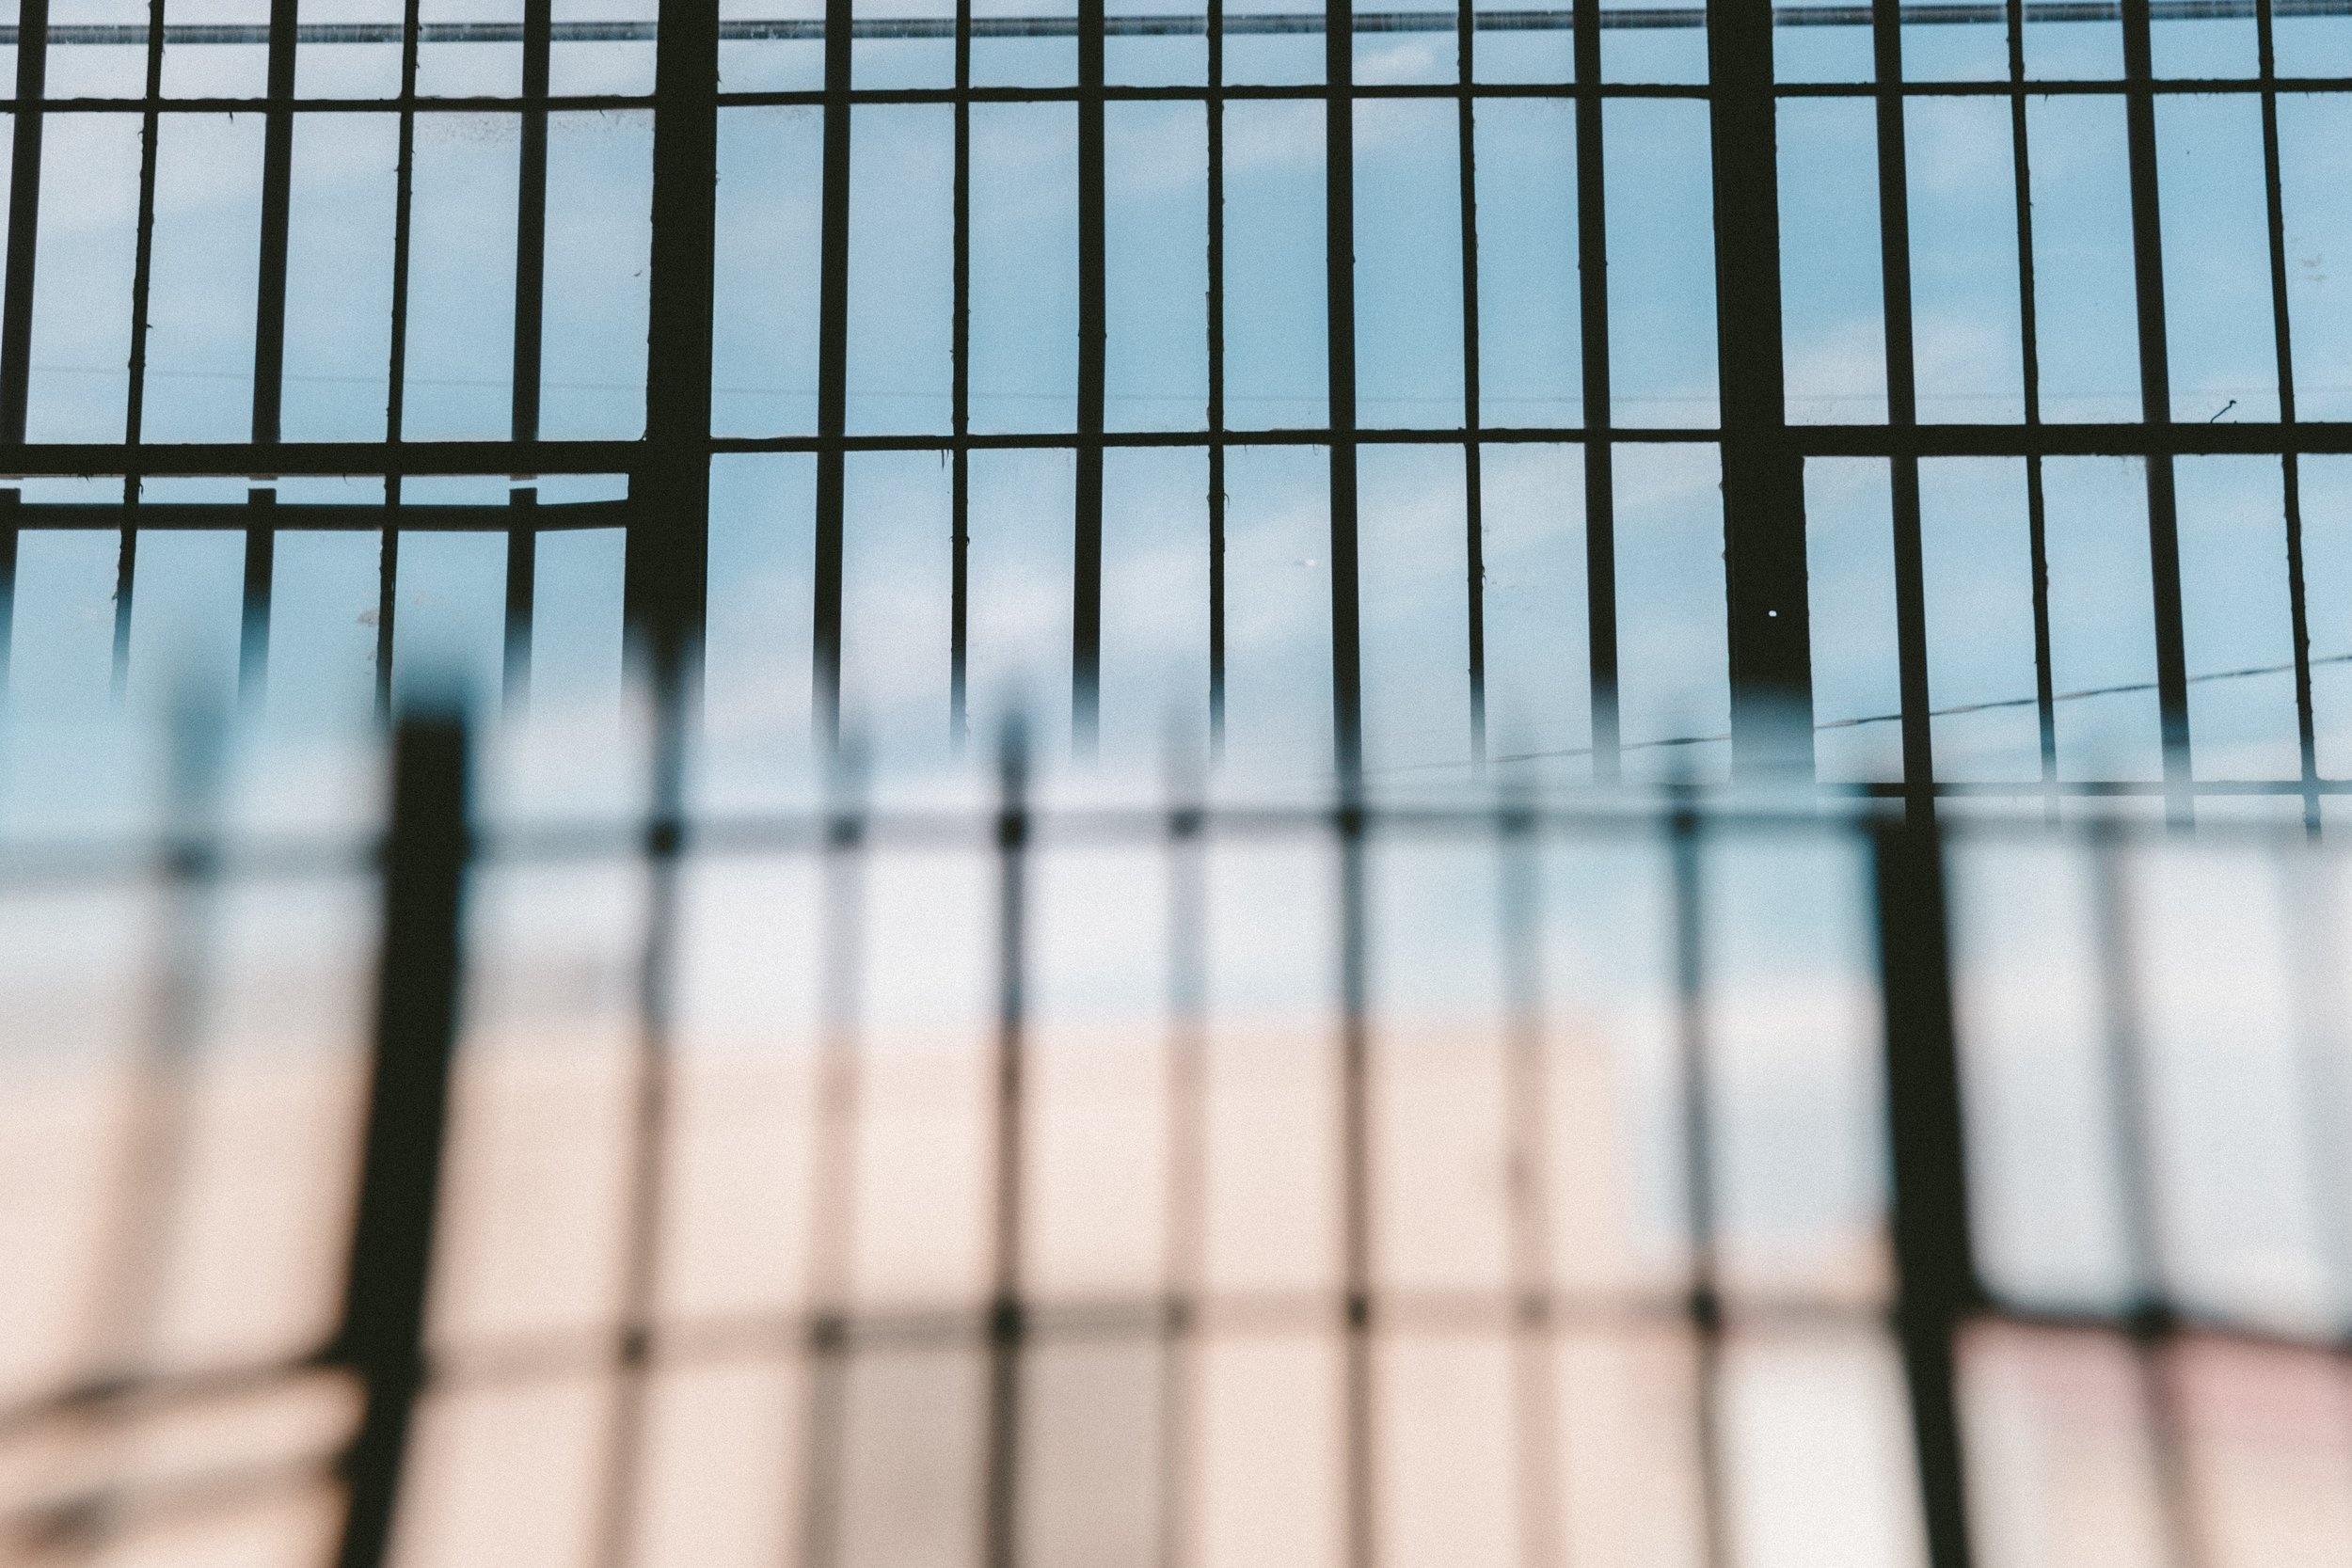 Learn how to be a Psychologically Healthy Workplace from a ...Federal Detention Center? APA Center for Organizational Excellence  That's right. A FEDERAL DETENTION CENTER. Read about what it takes because if they could do it...